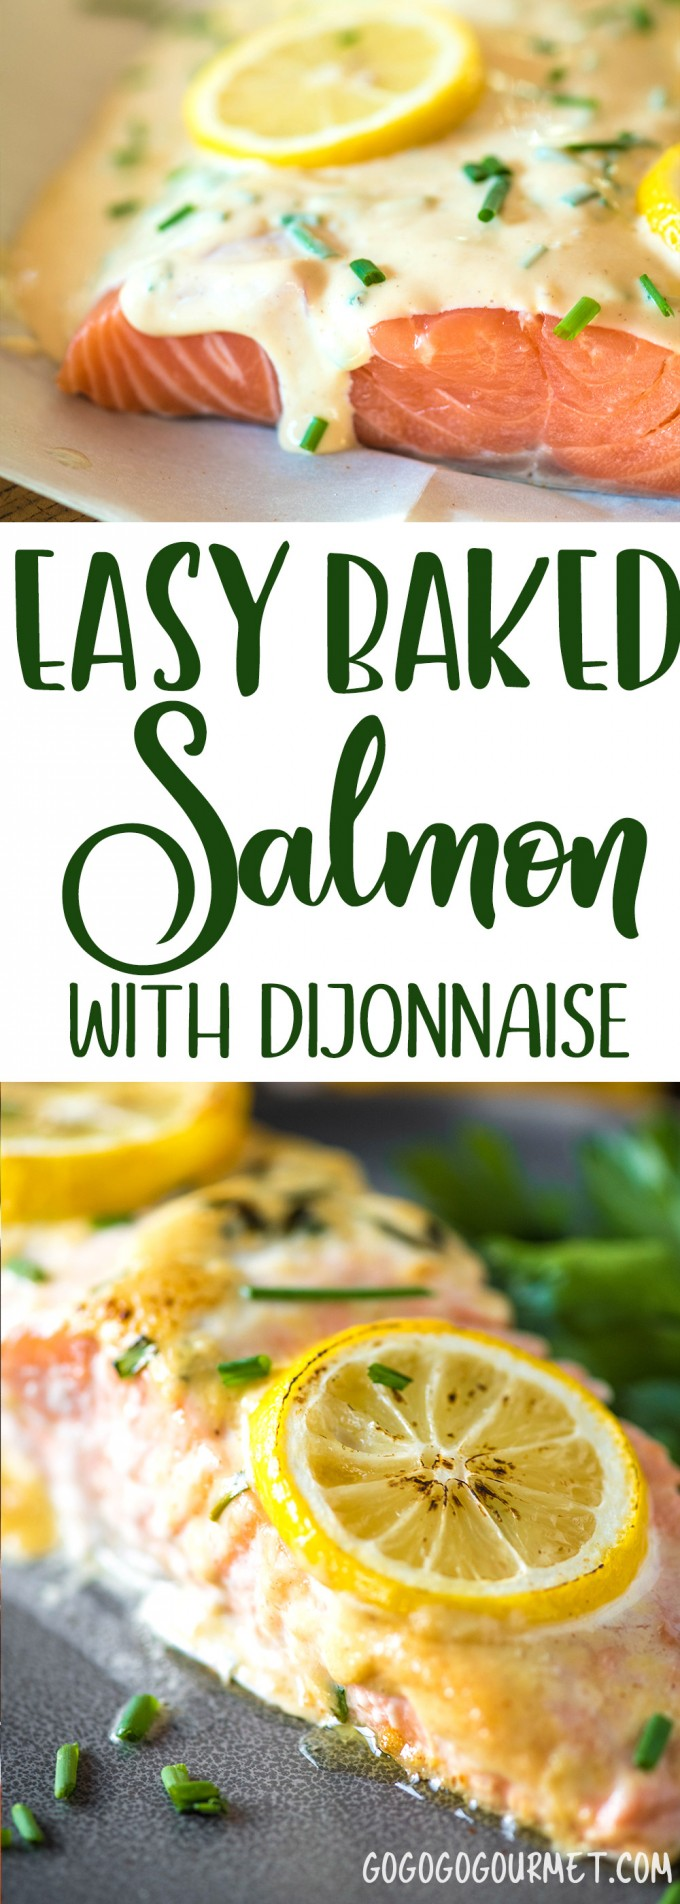 This Easy Oven Baked Lemon Salmon is topped off with an incredible dijonnaise sauce- so fast, its perfect for busy nights! #salmonrecipe #salmon #dinnerideas #dinnertime via @gogogogourmet